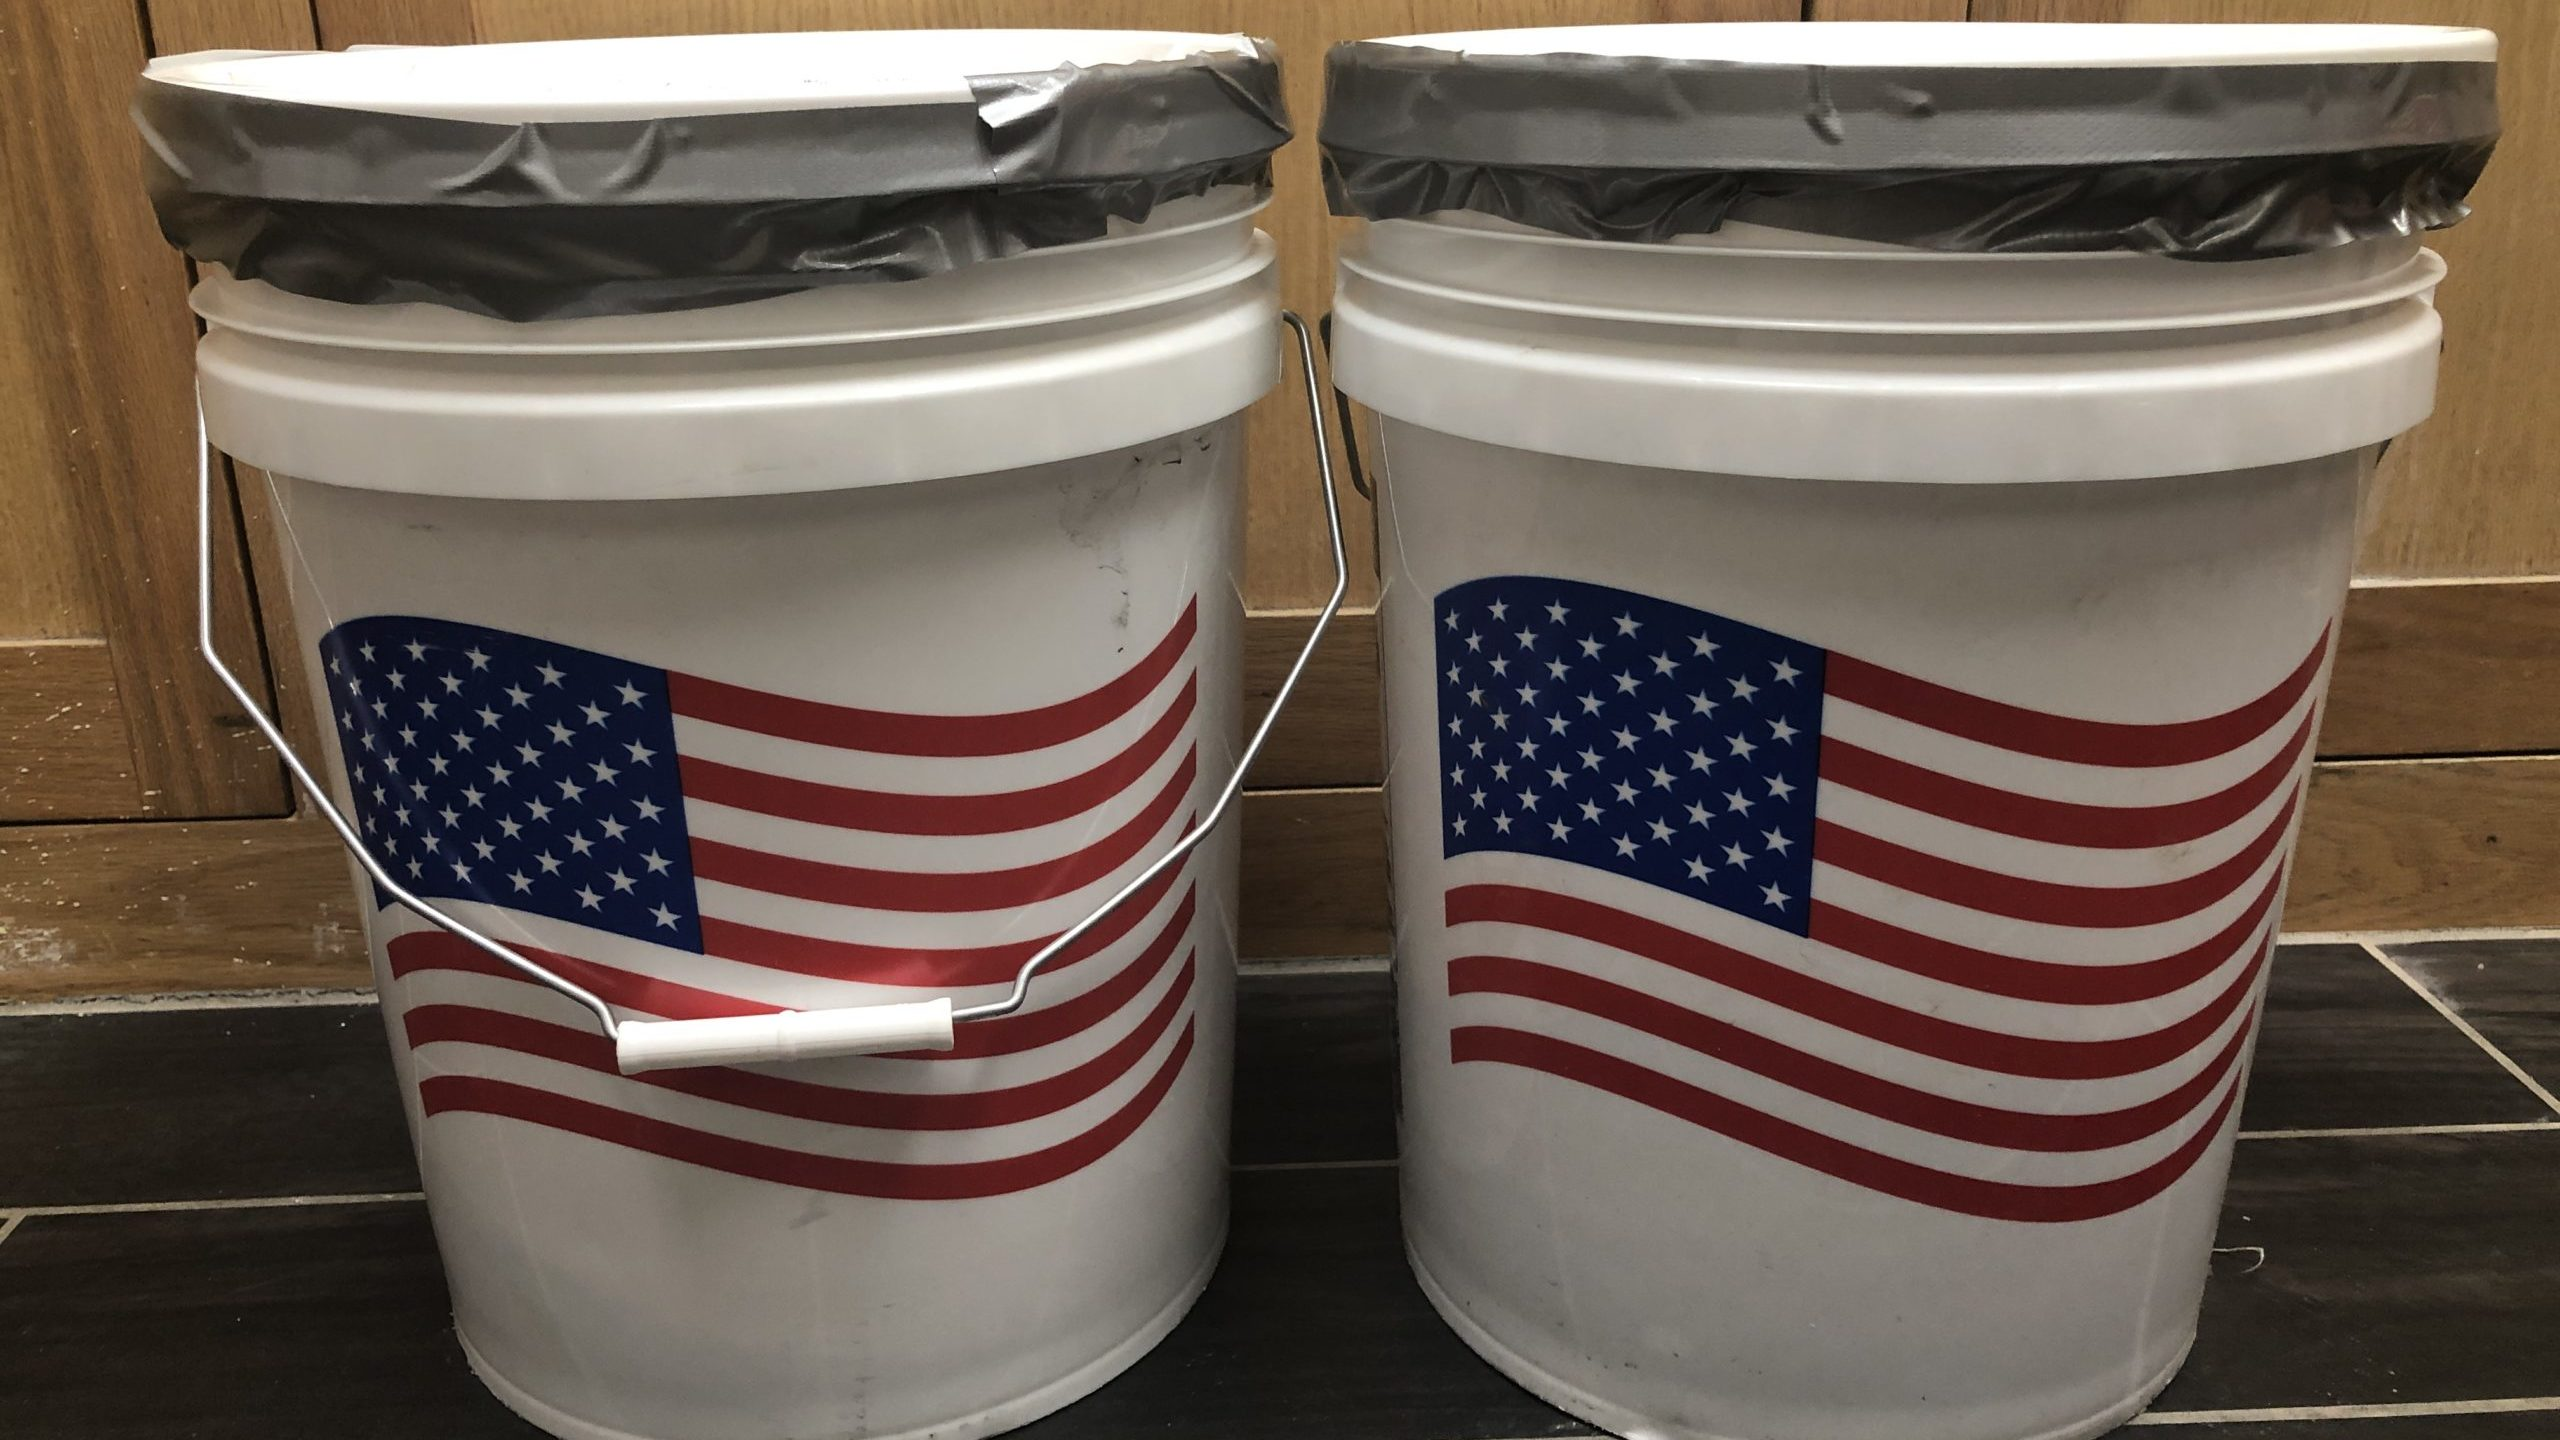 An image of two 5-gallon buckets with american flags on them.